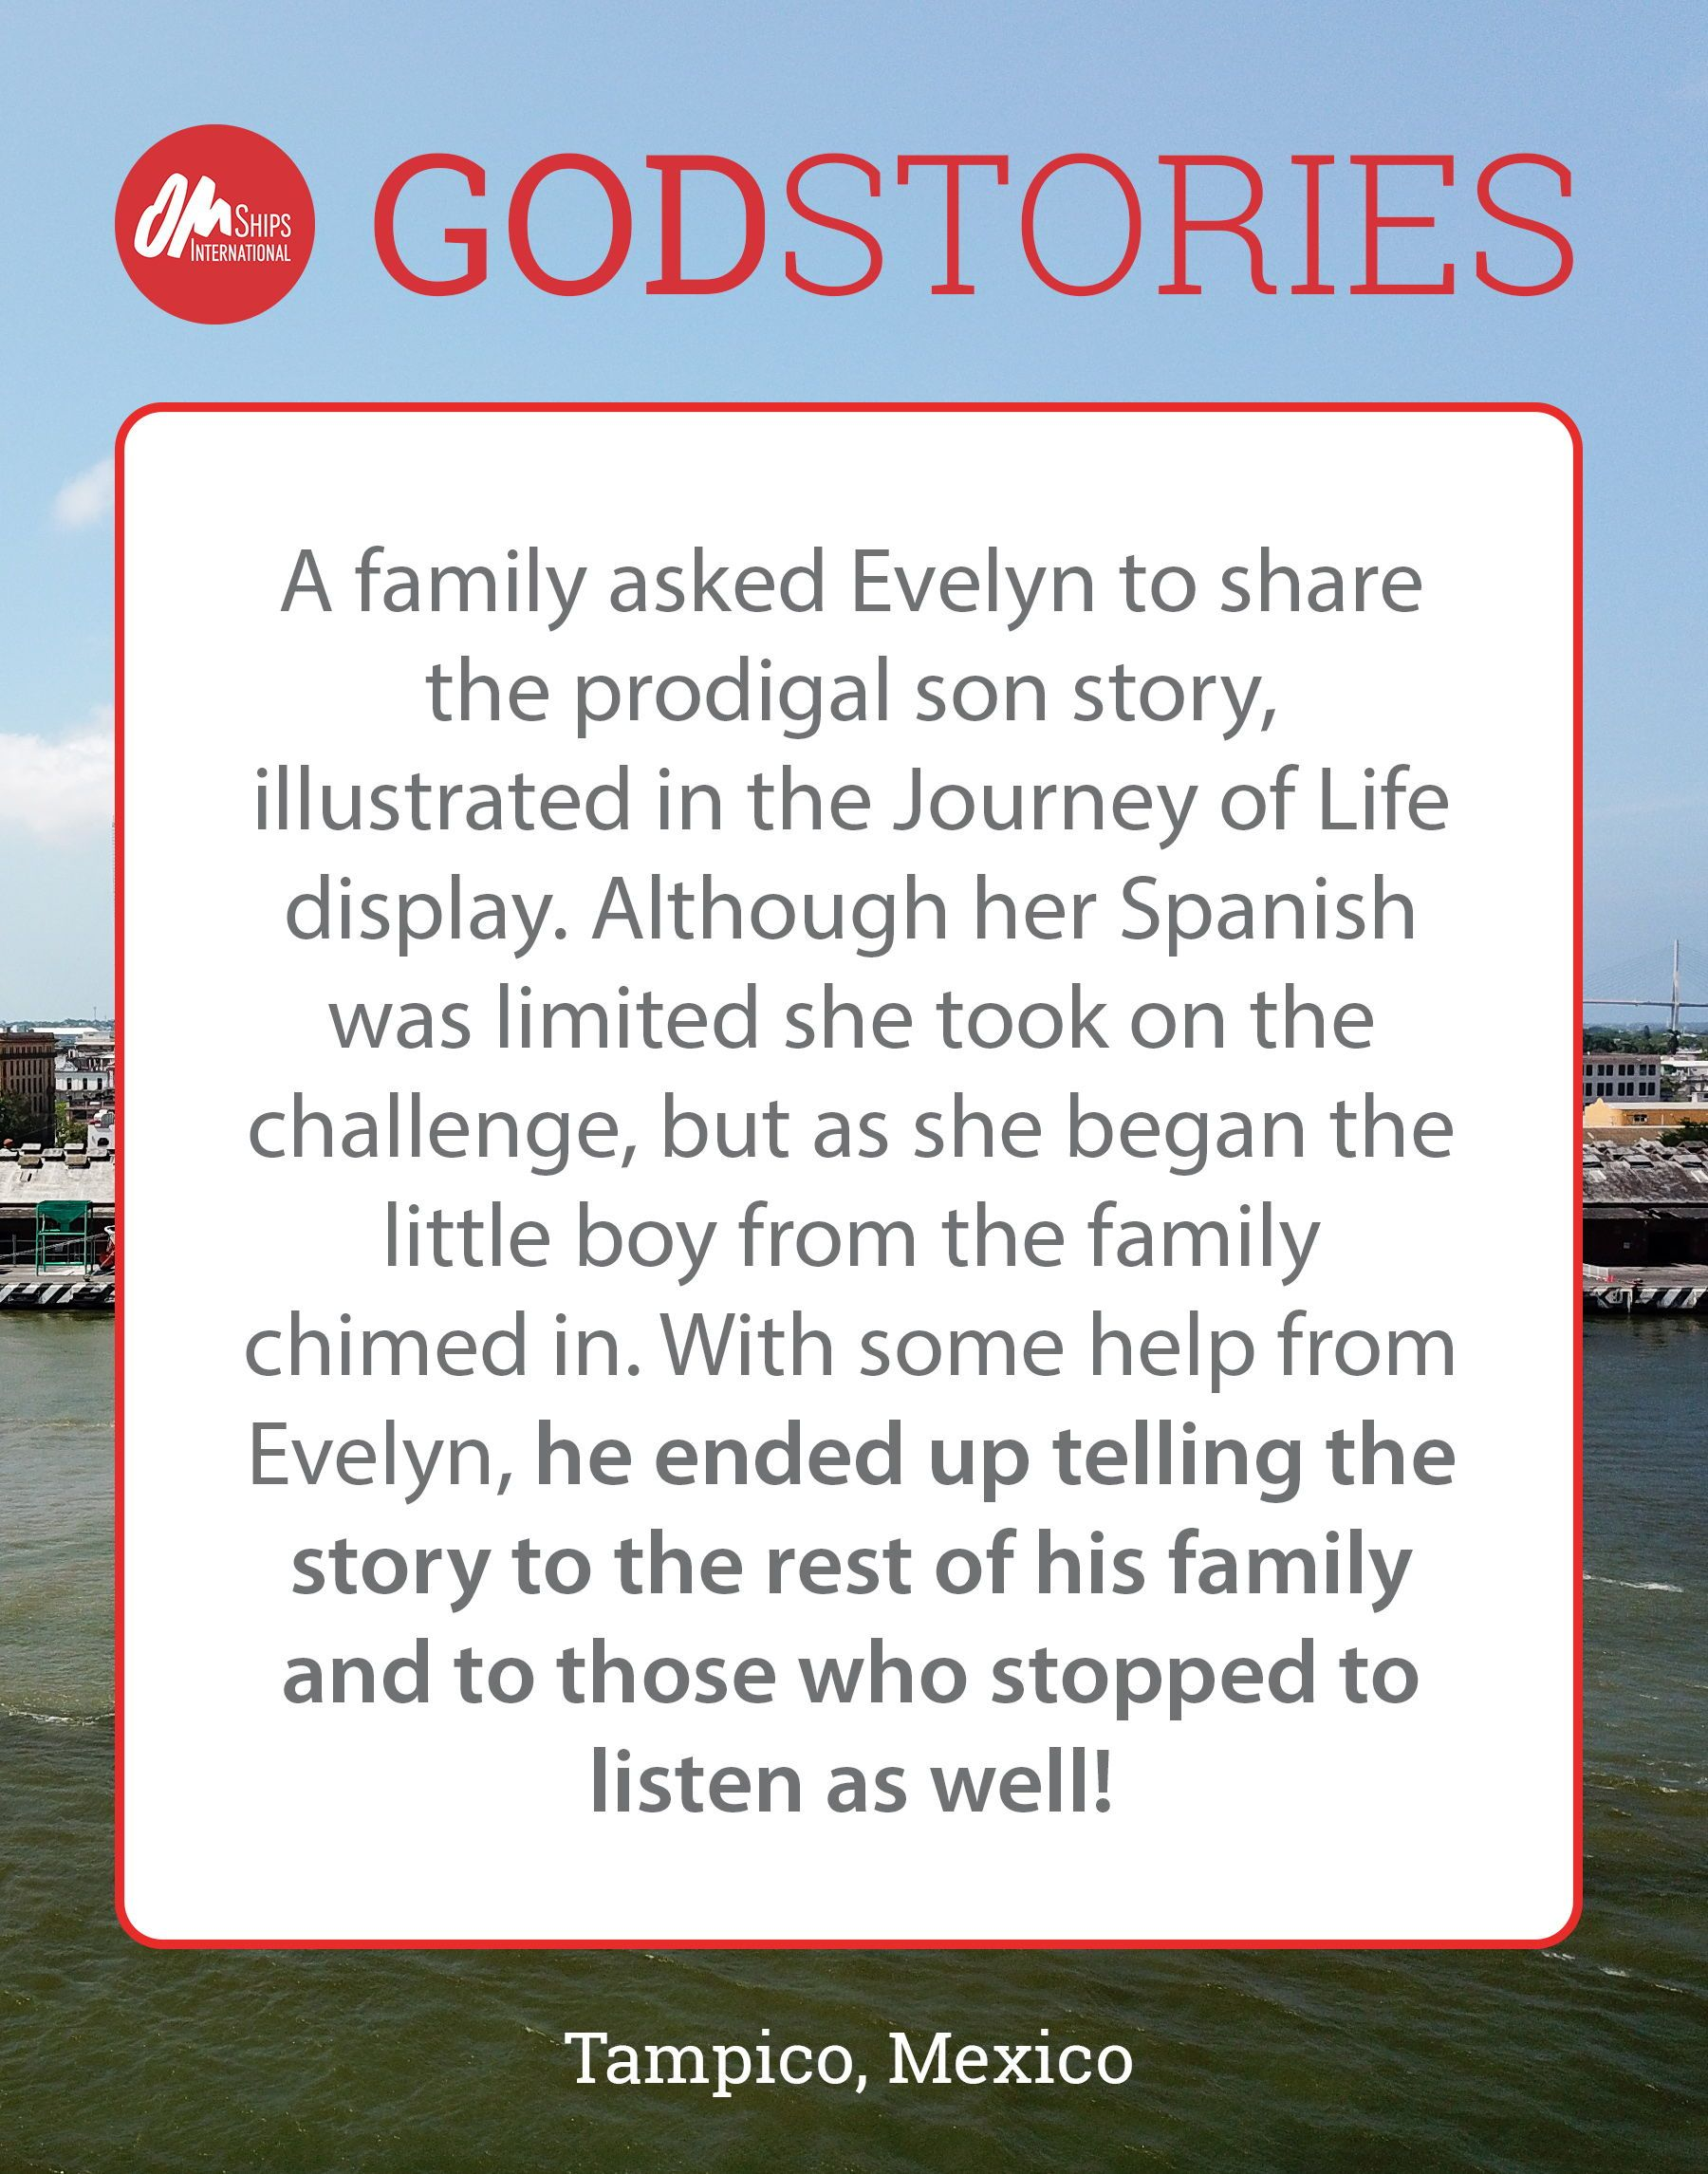 This is one crew member's God Story from their time serving on board the  Logos Hope. Visit